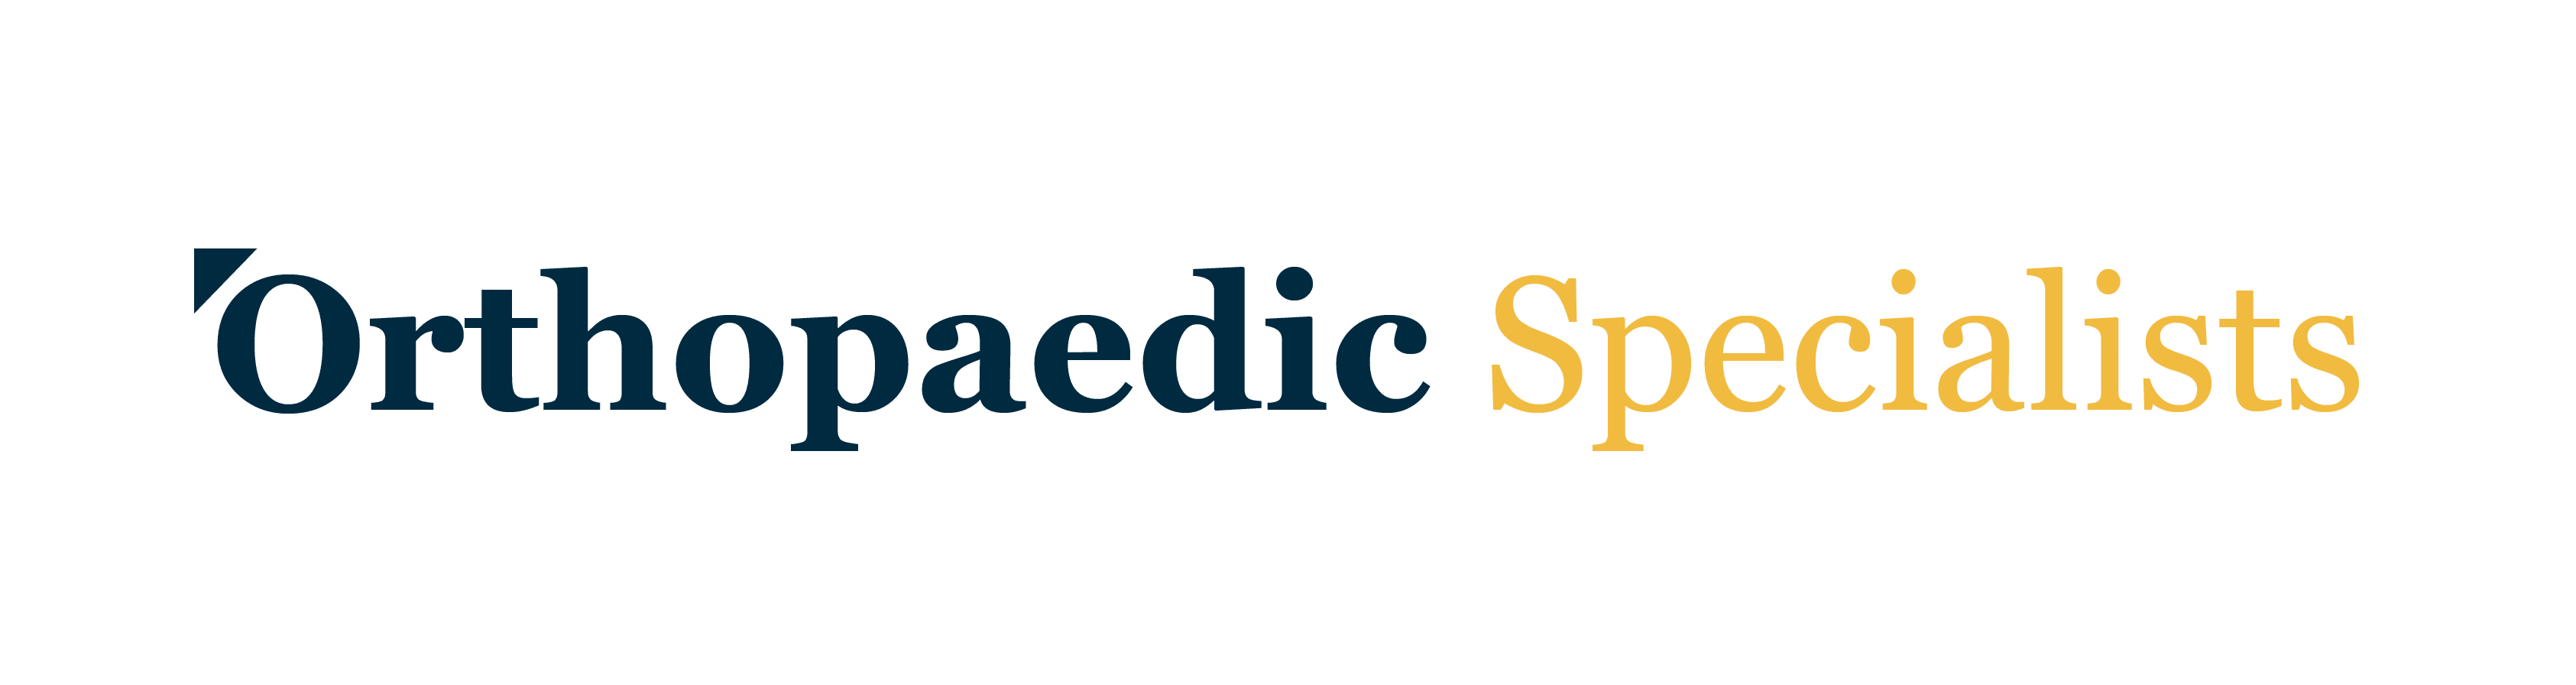 Orthopaedic Specialists